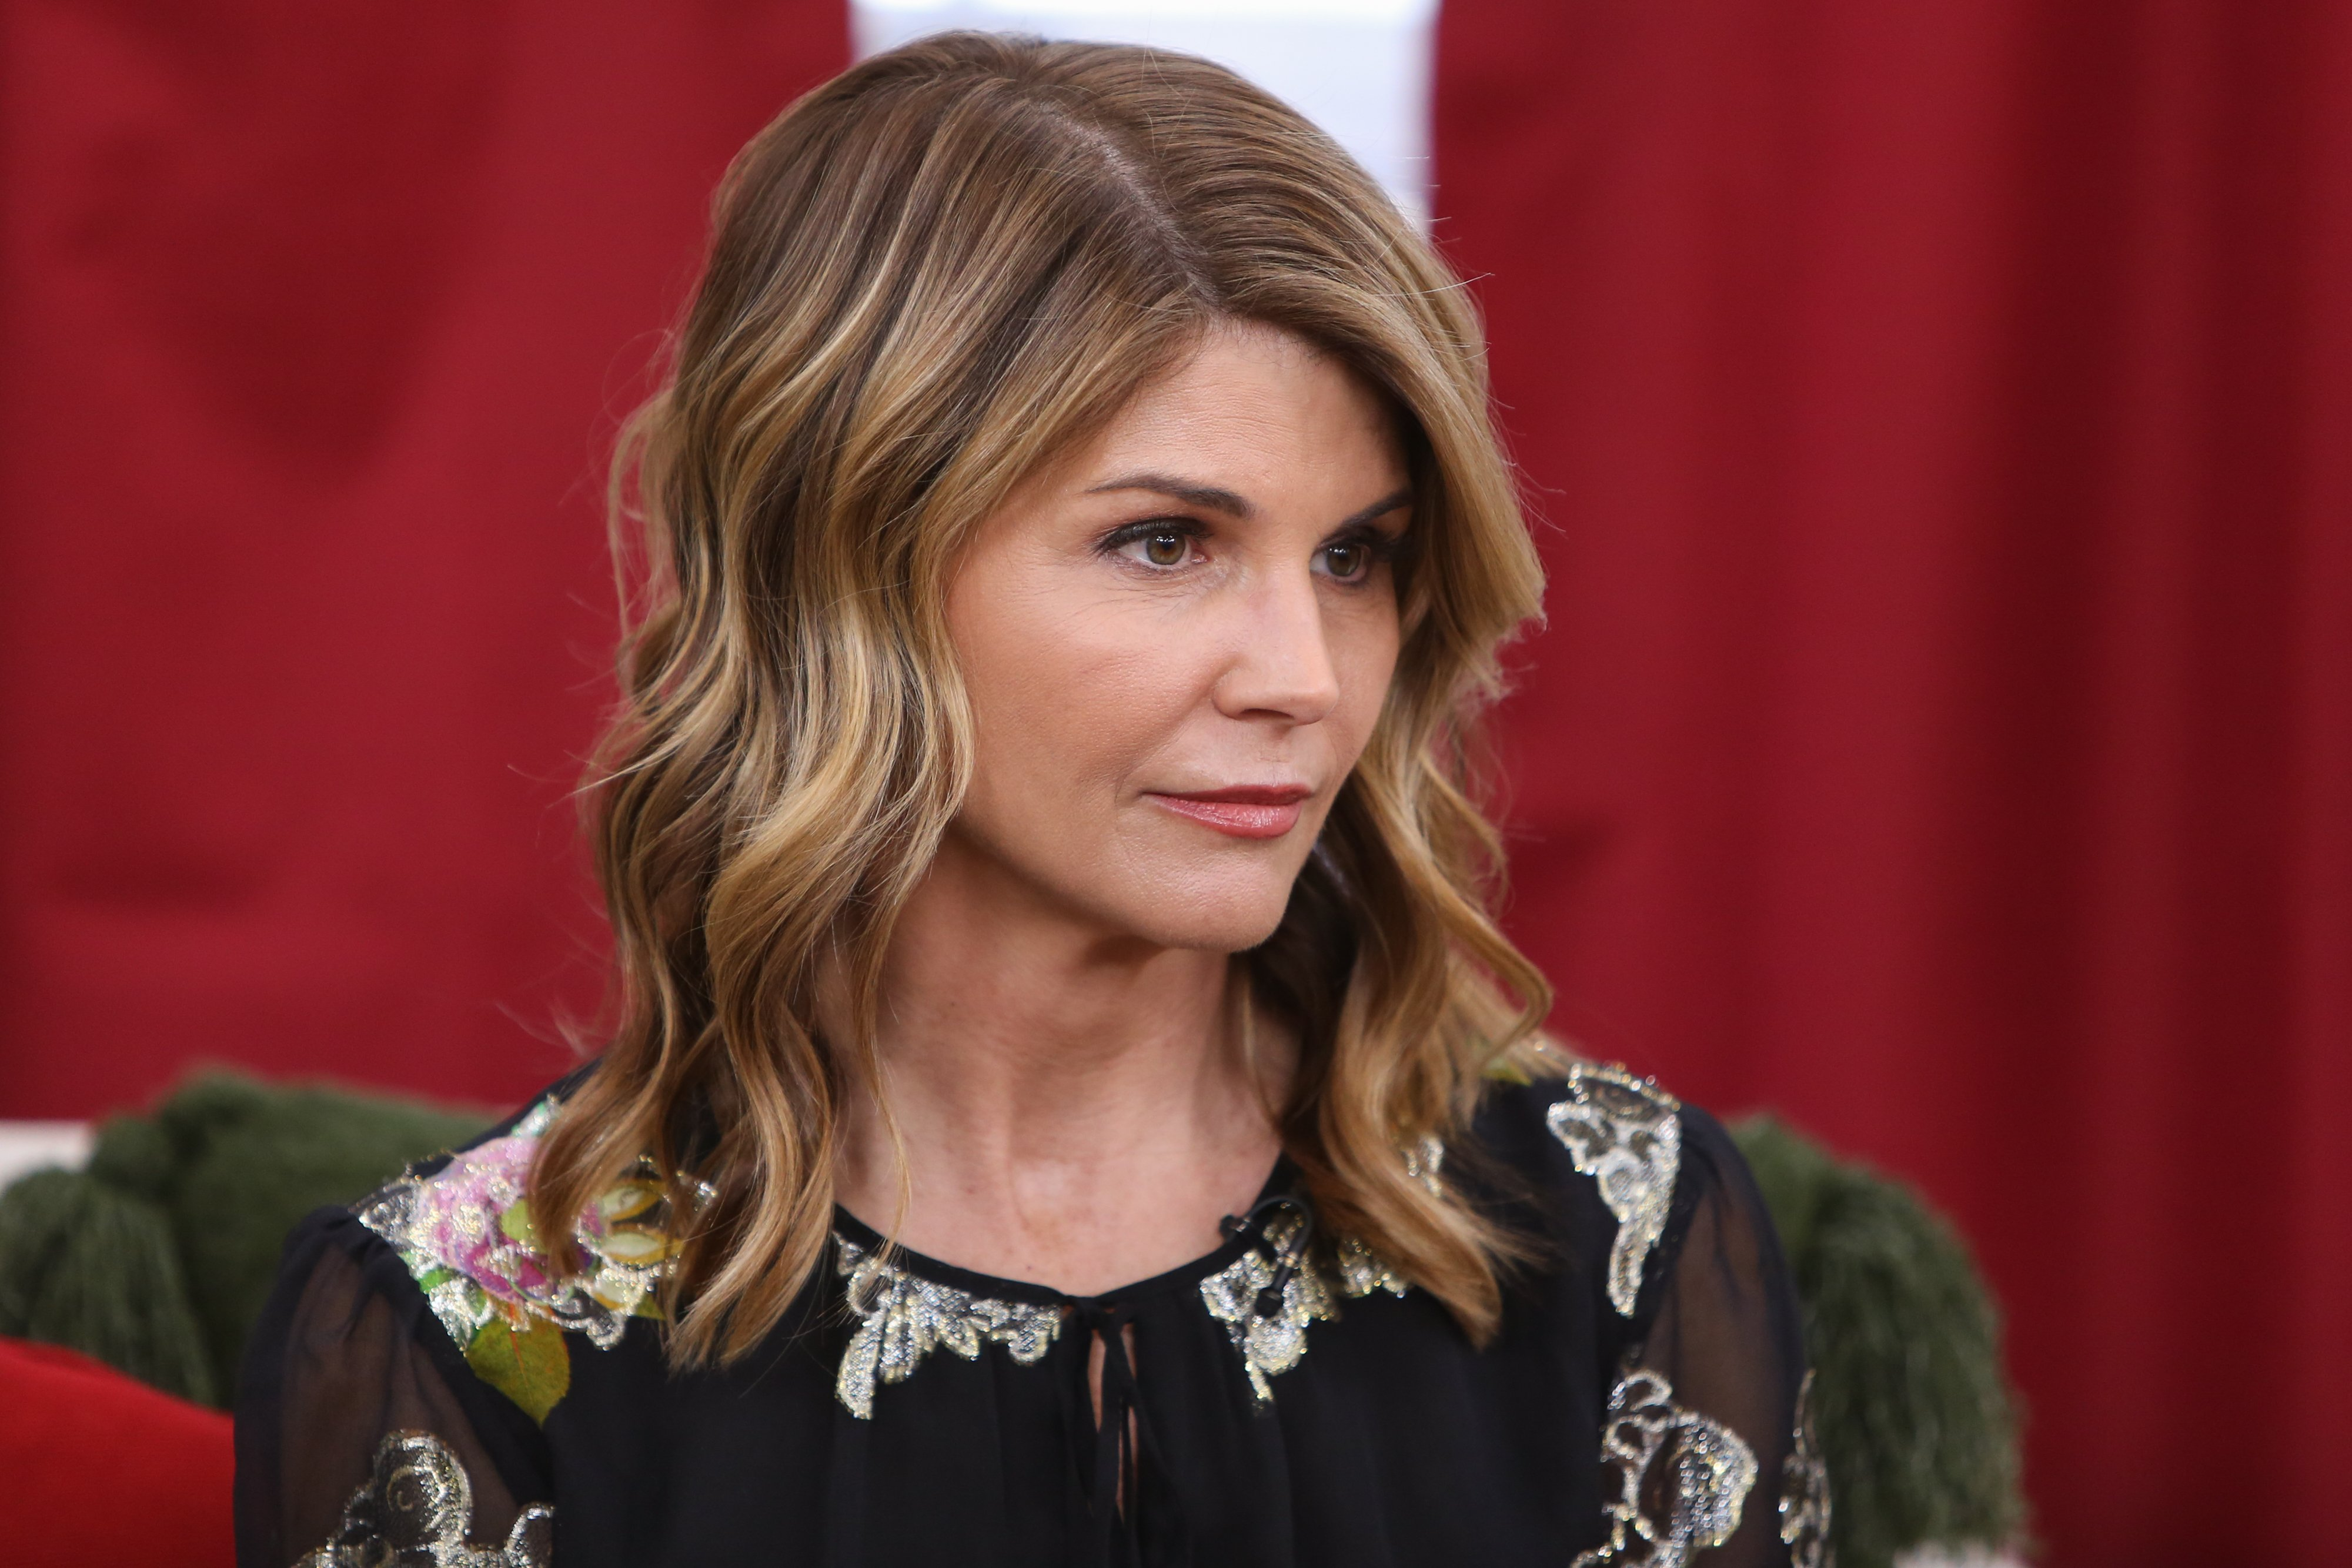 Lori Loughlin visiting Hallmark's 'Home & Family' at Universal Studios Hollywood on December 19, 2018 in Universal City, California.   Source: Getty